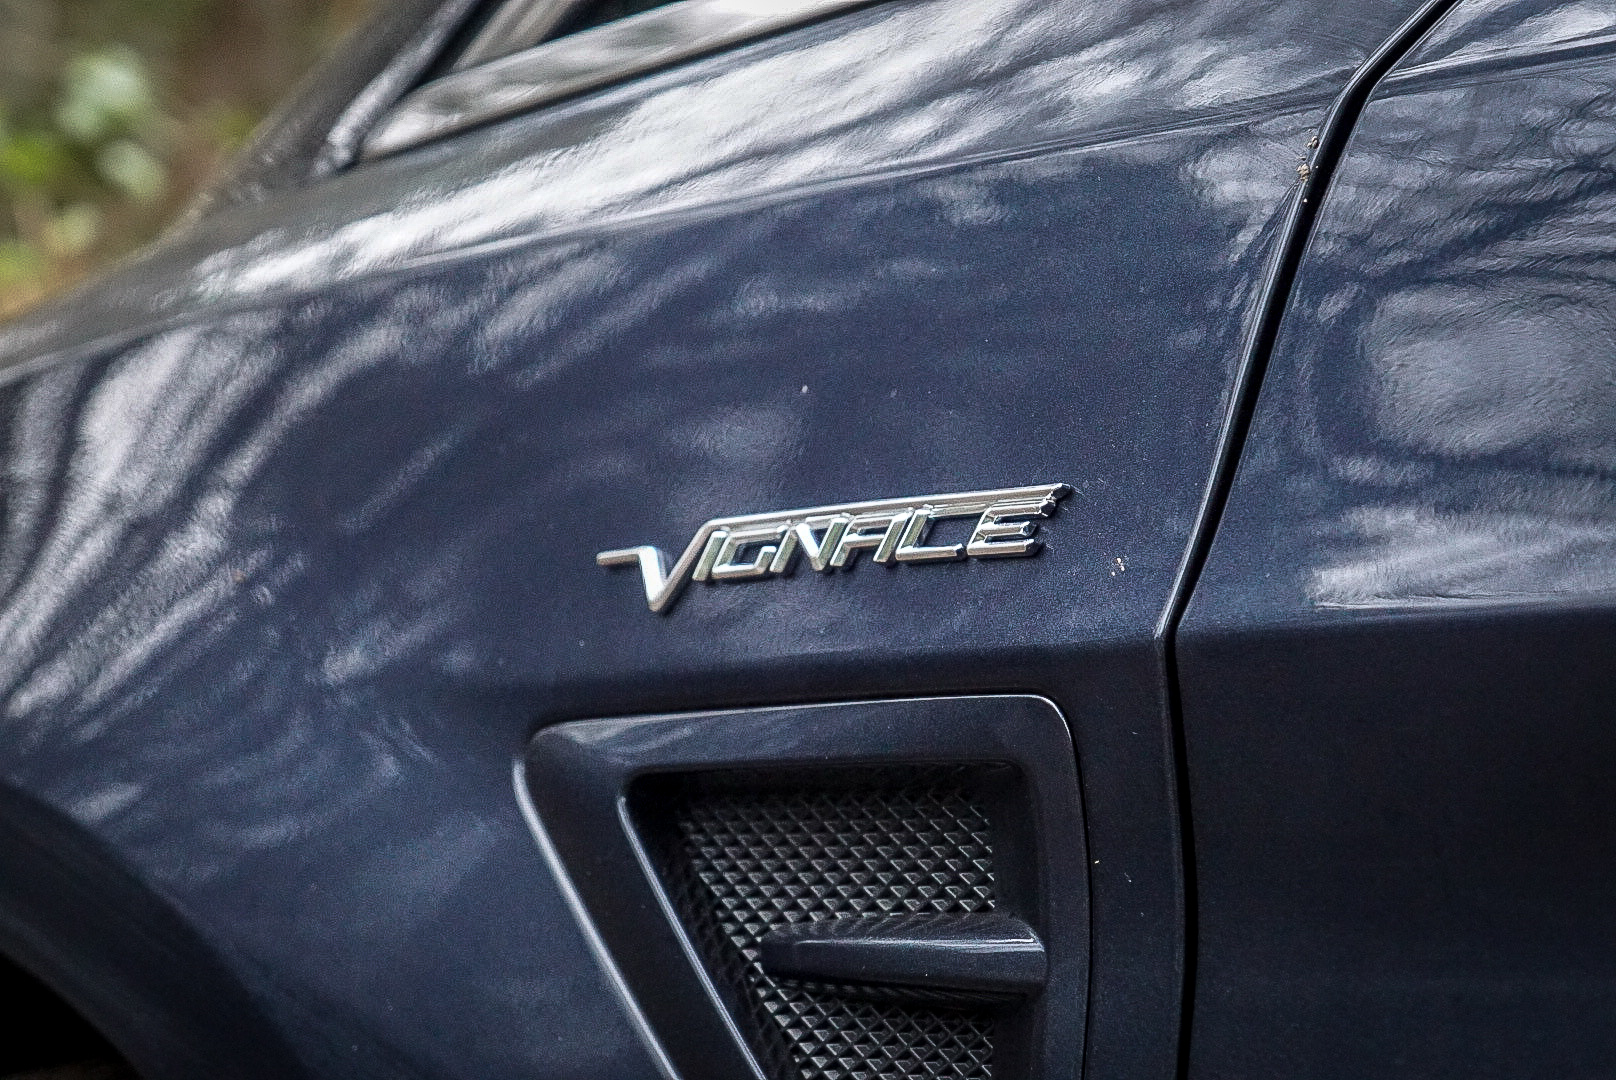 Vignale sits at the top of the range of specifications